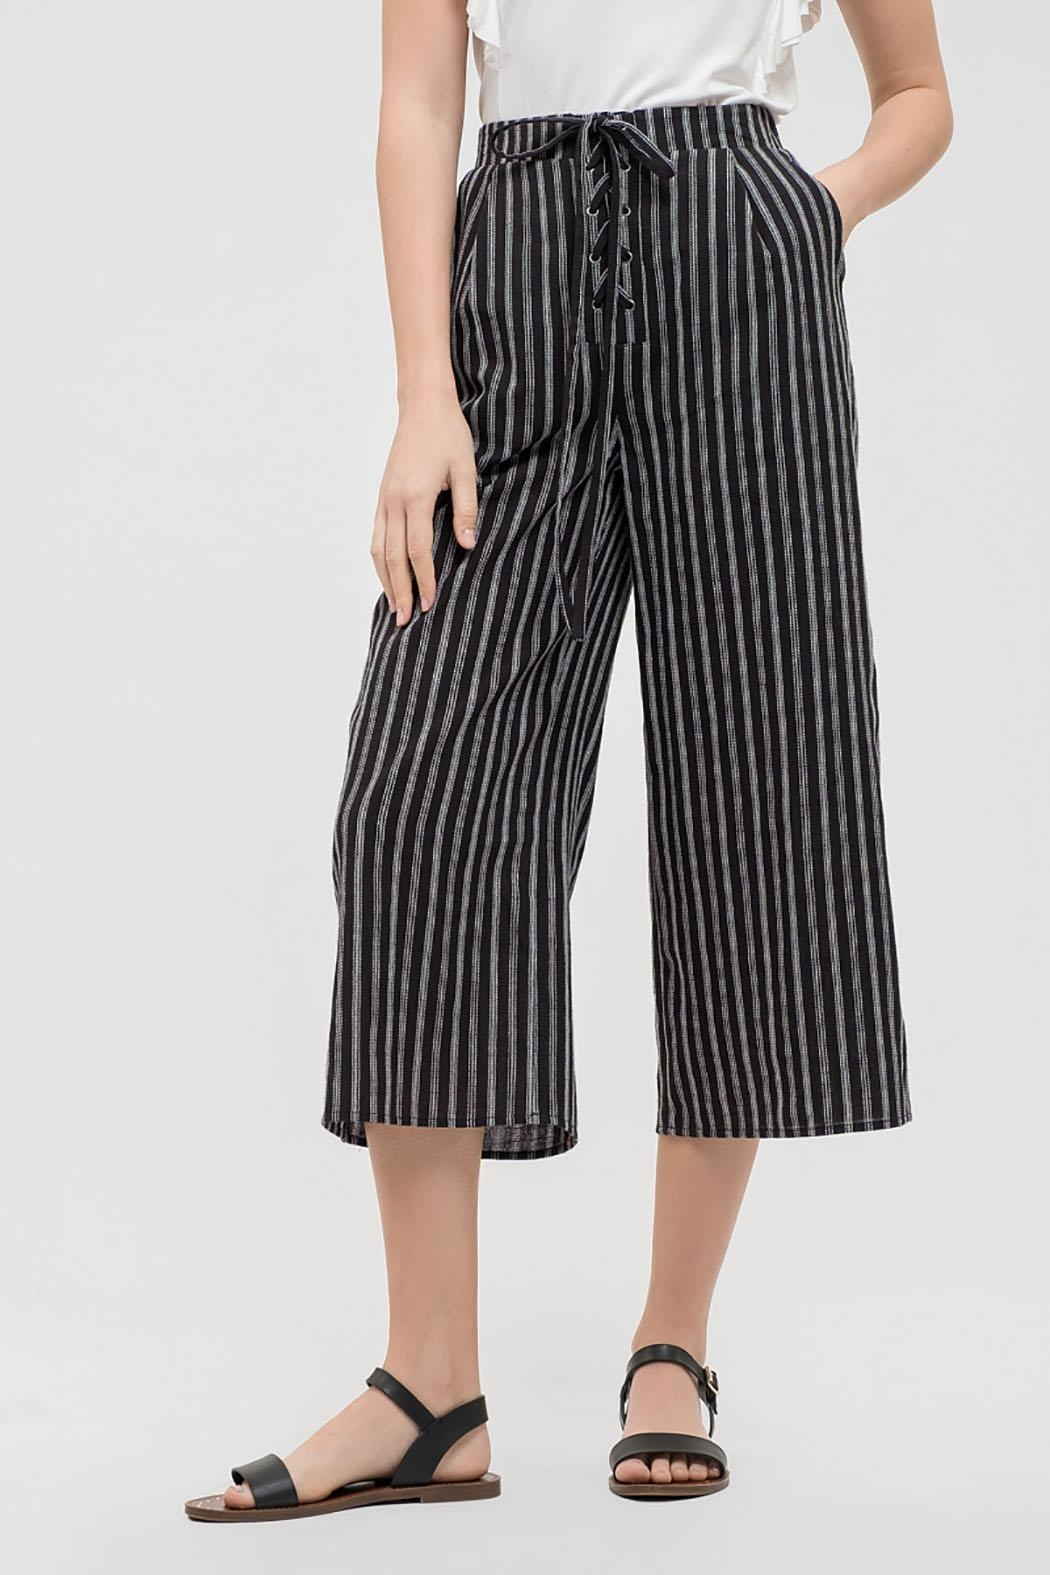 Blu Pepper Striped Drawstring Capris - Front Cropped Image